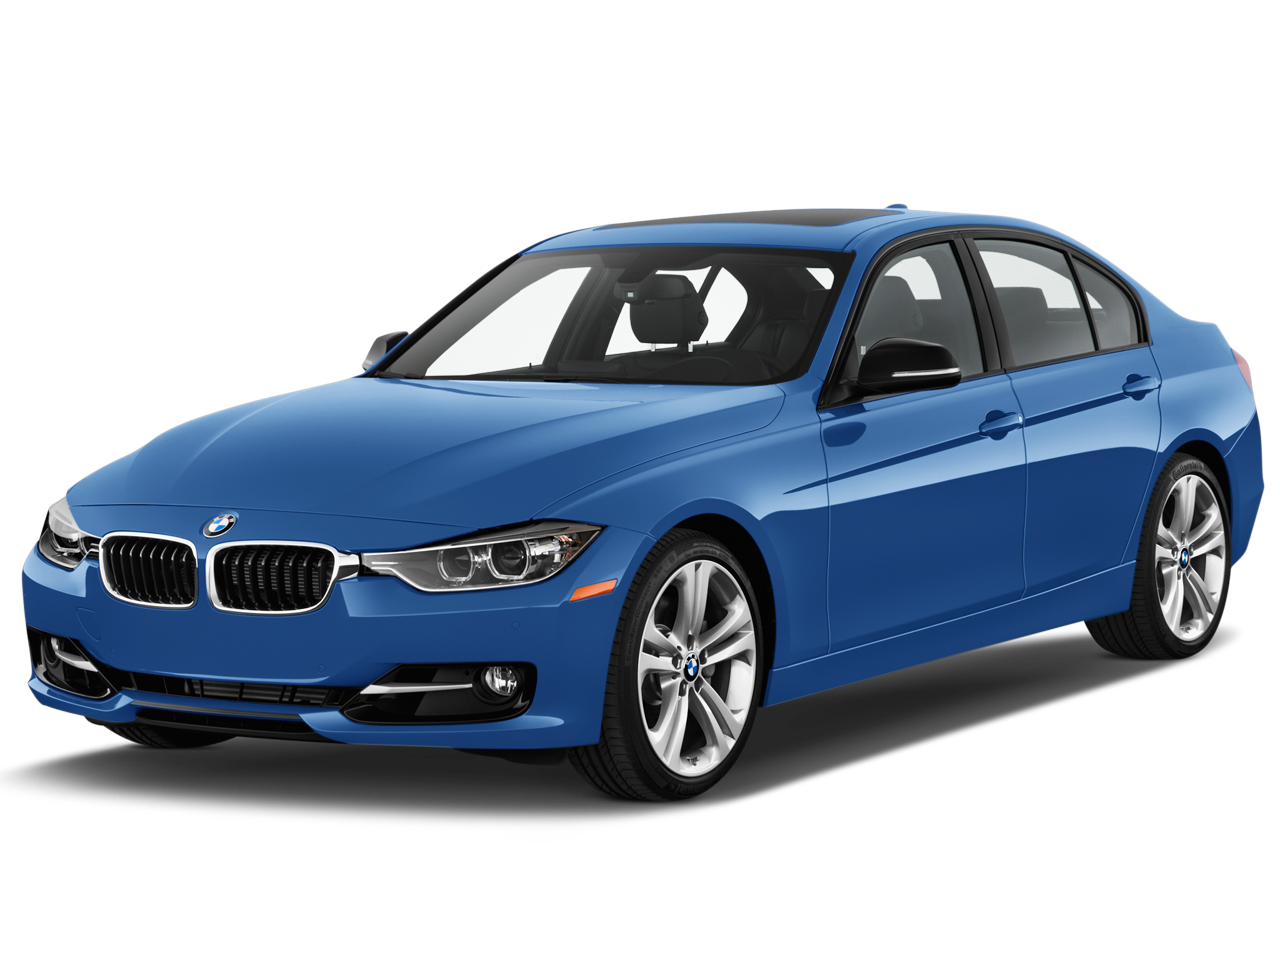 HQ Bmw PNG Transparent Bmw.PNG Images..